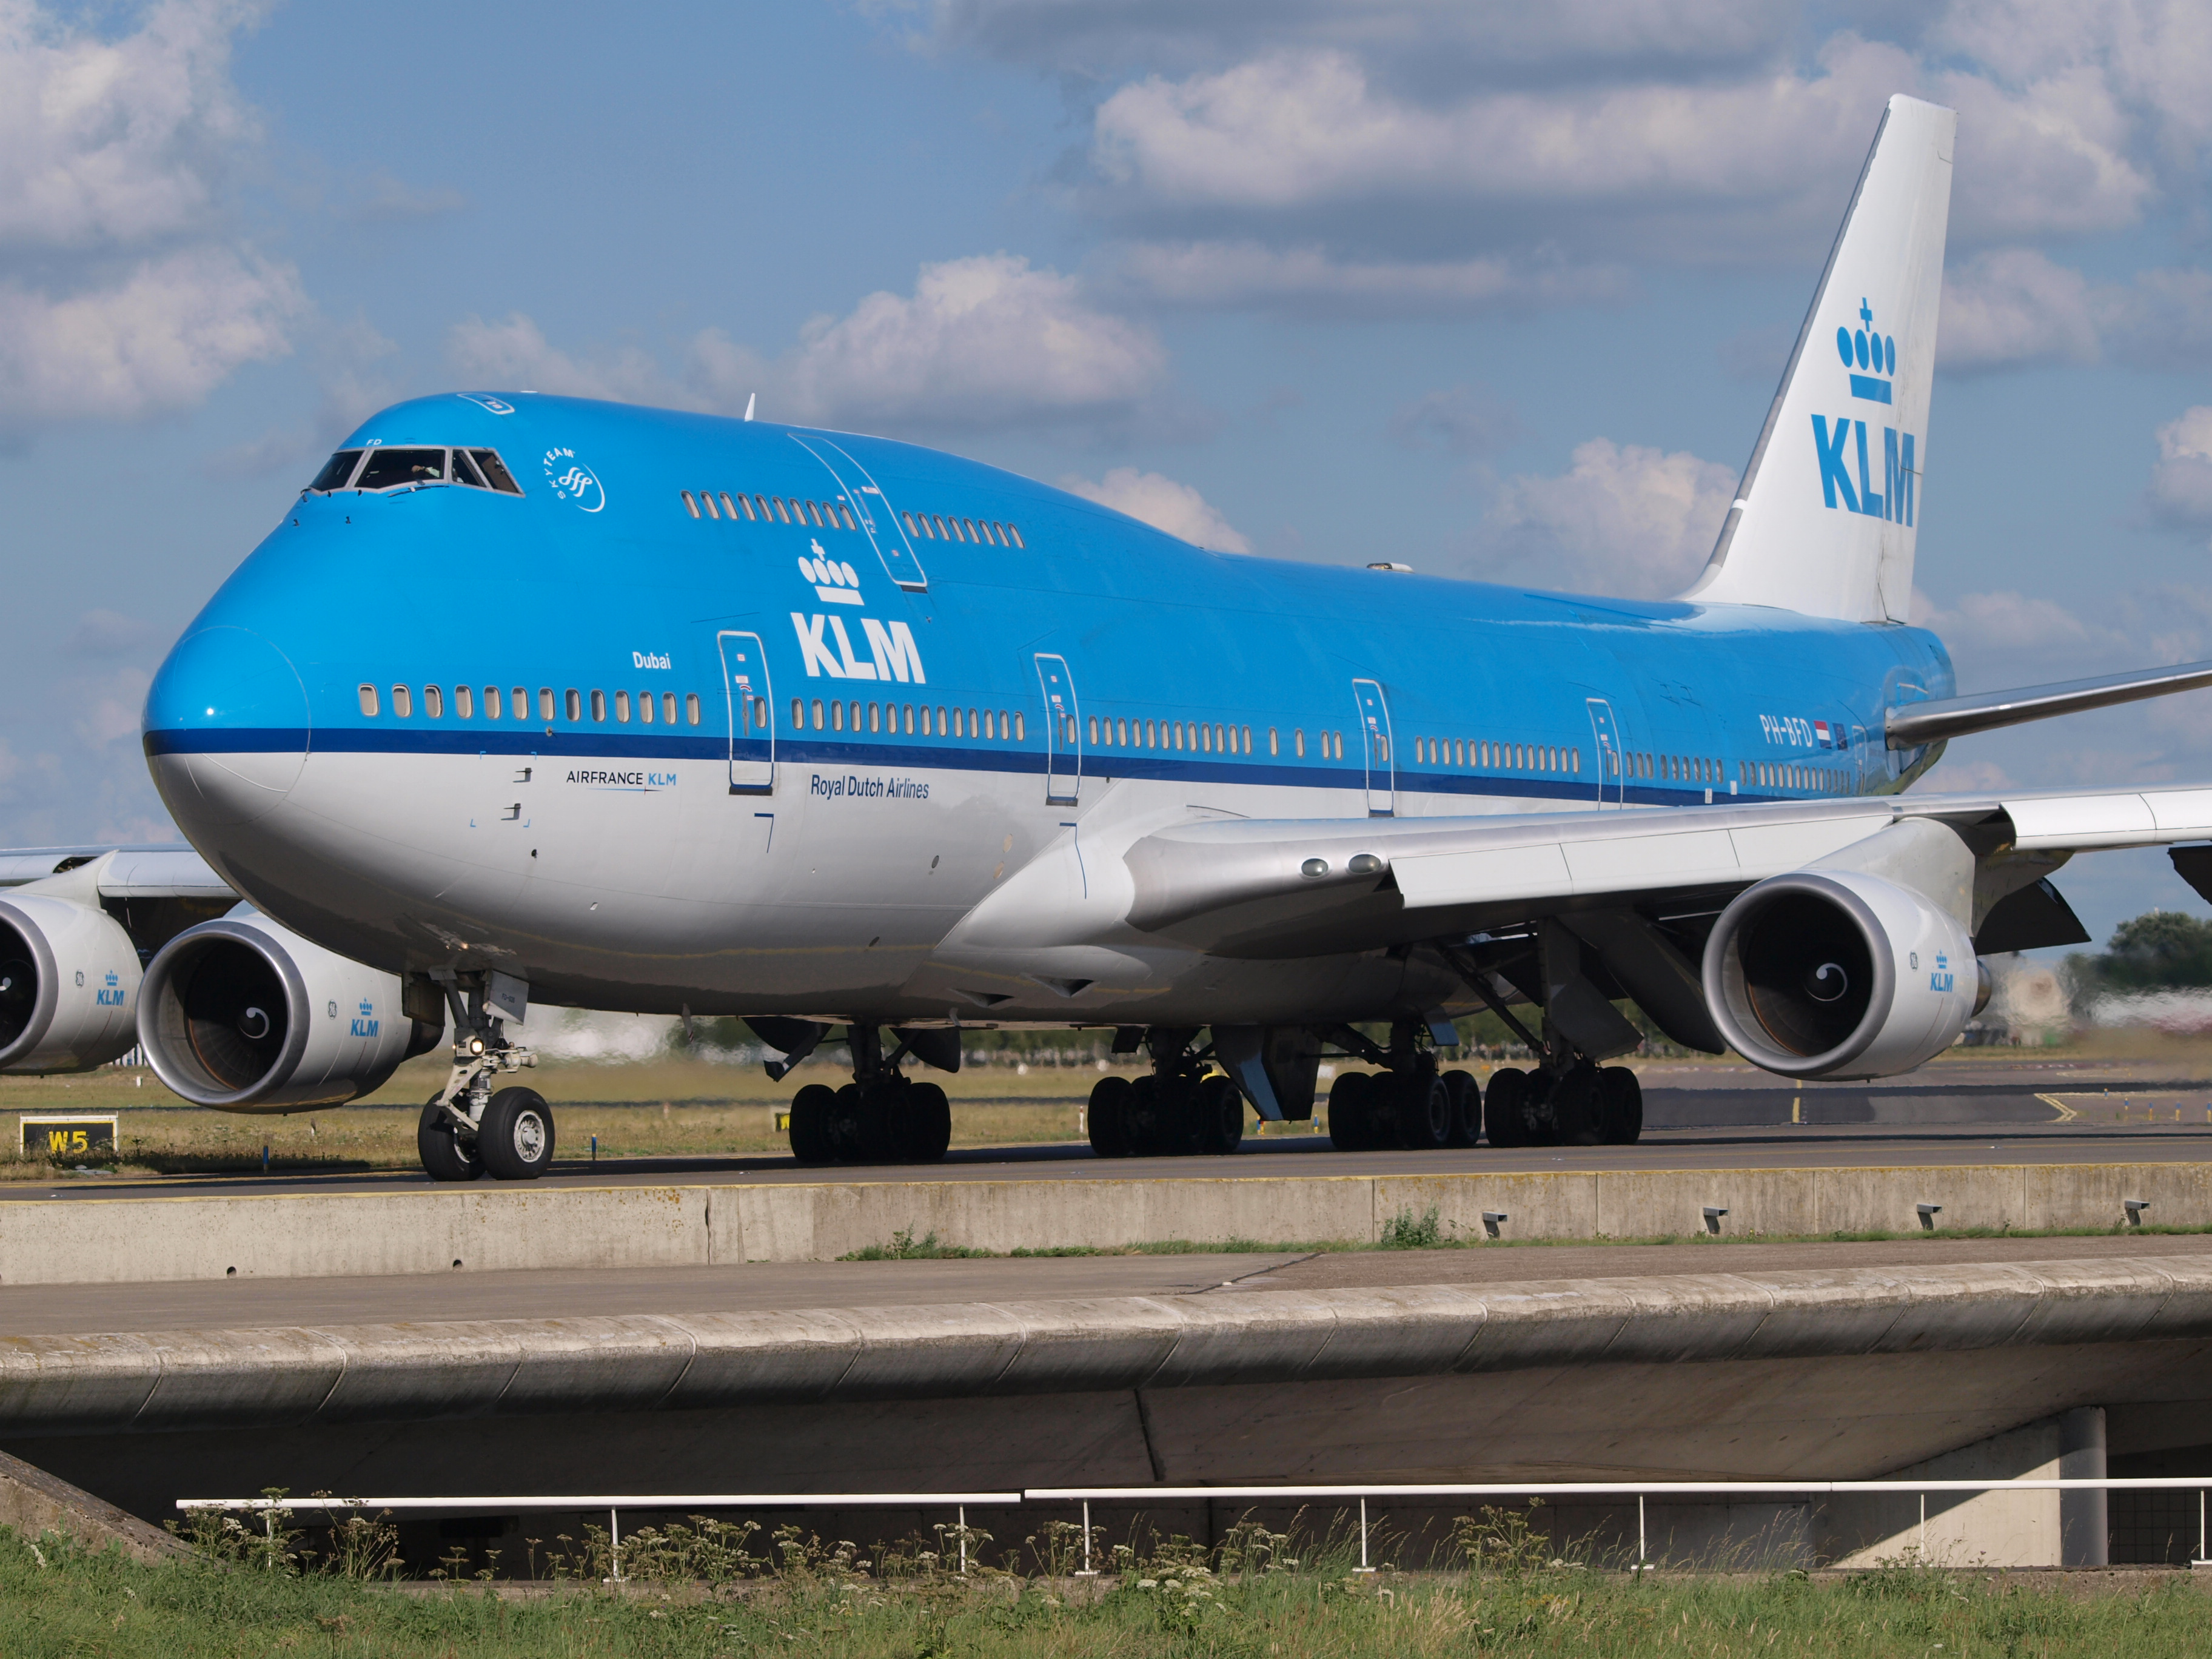 File Ph Bfd Klm Royal Dutch Airlines Boeing 747 406 M